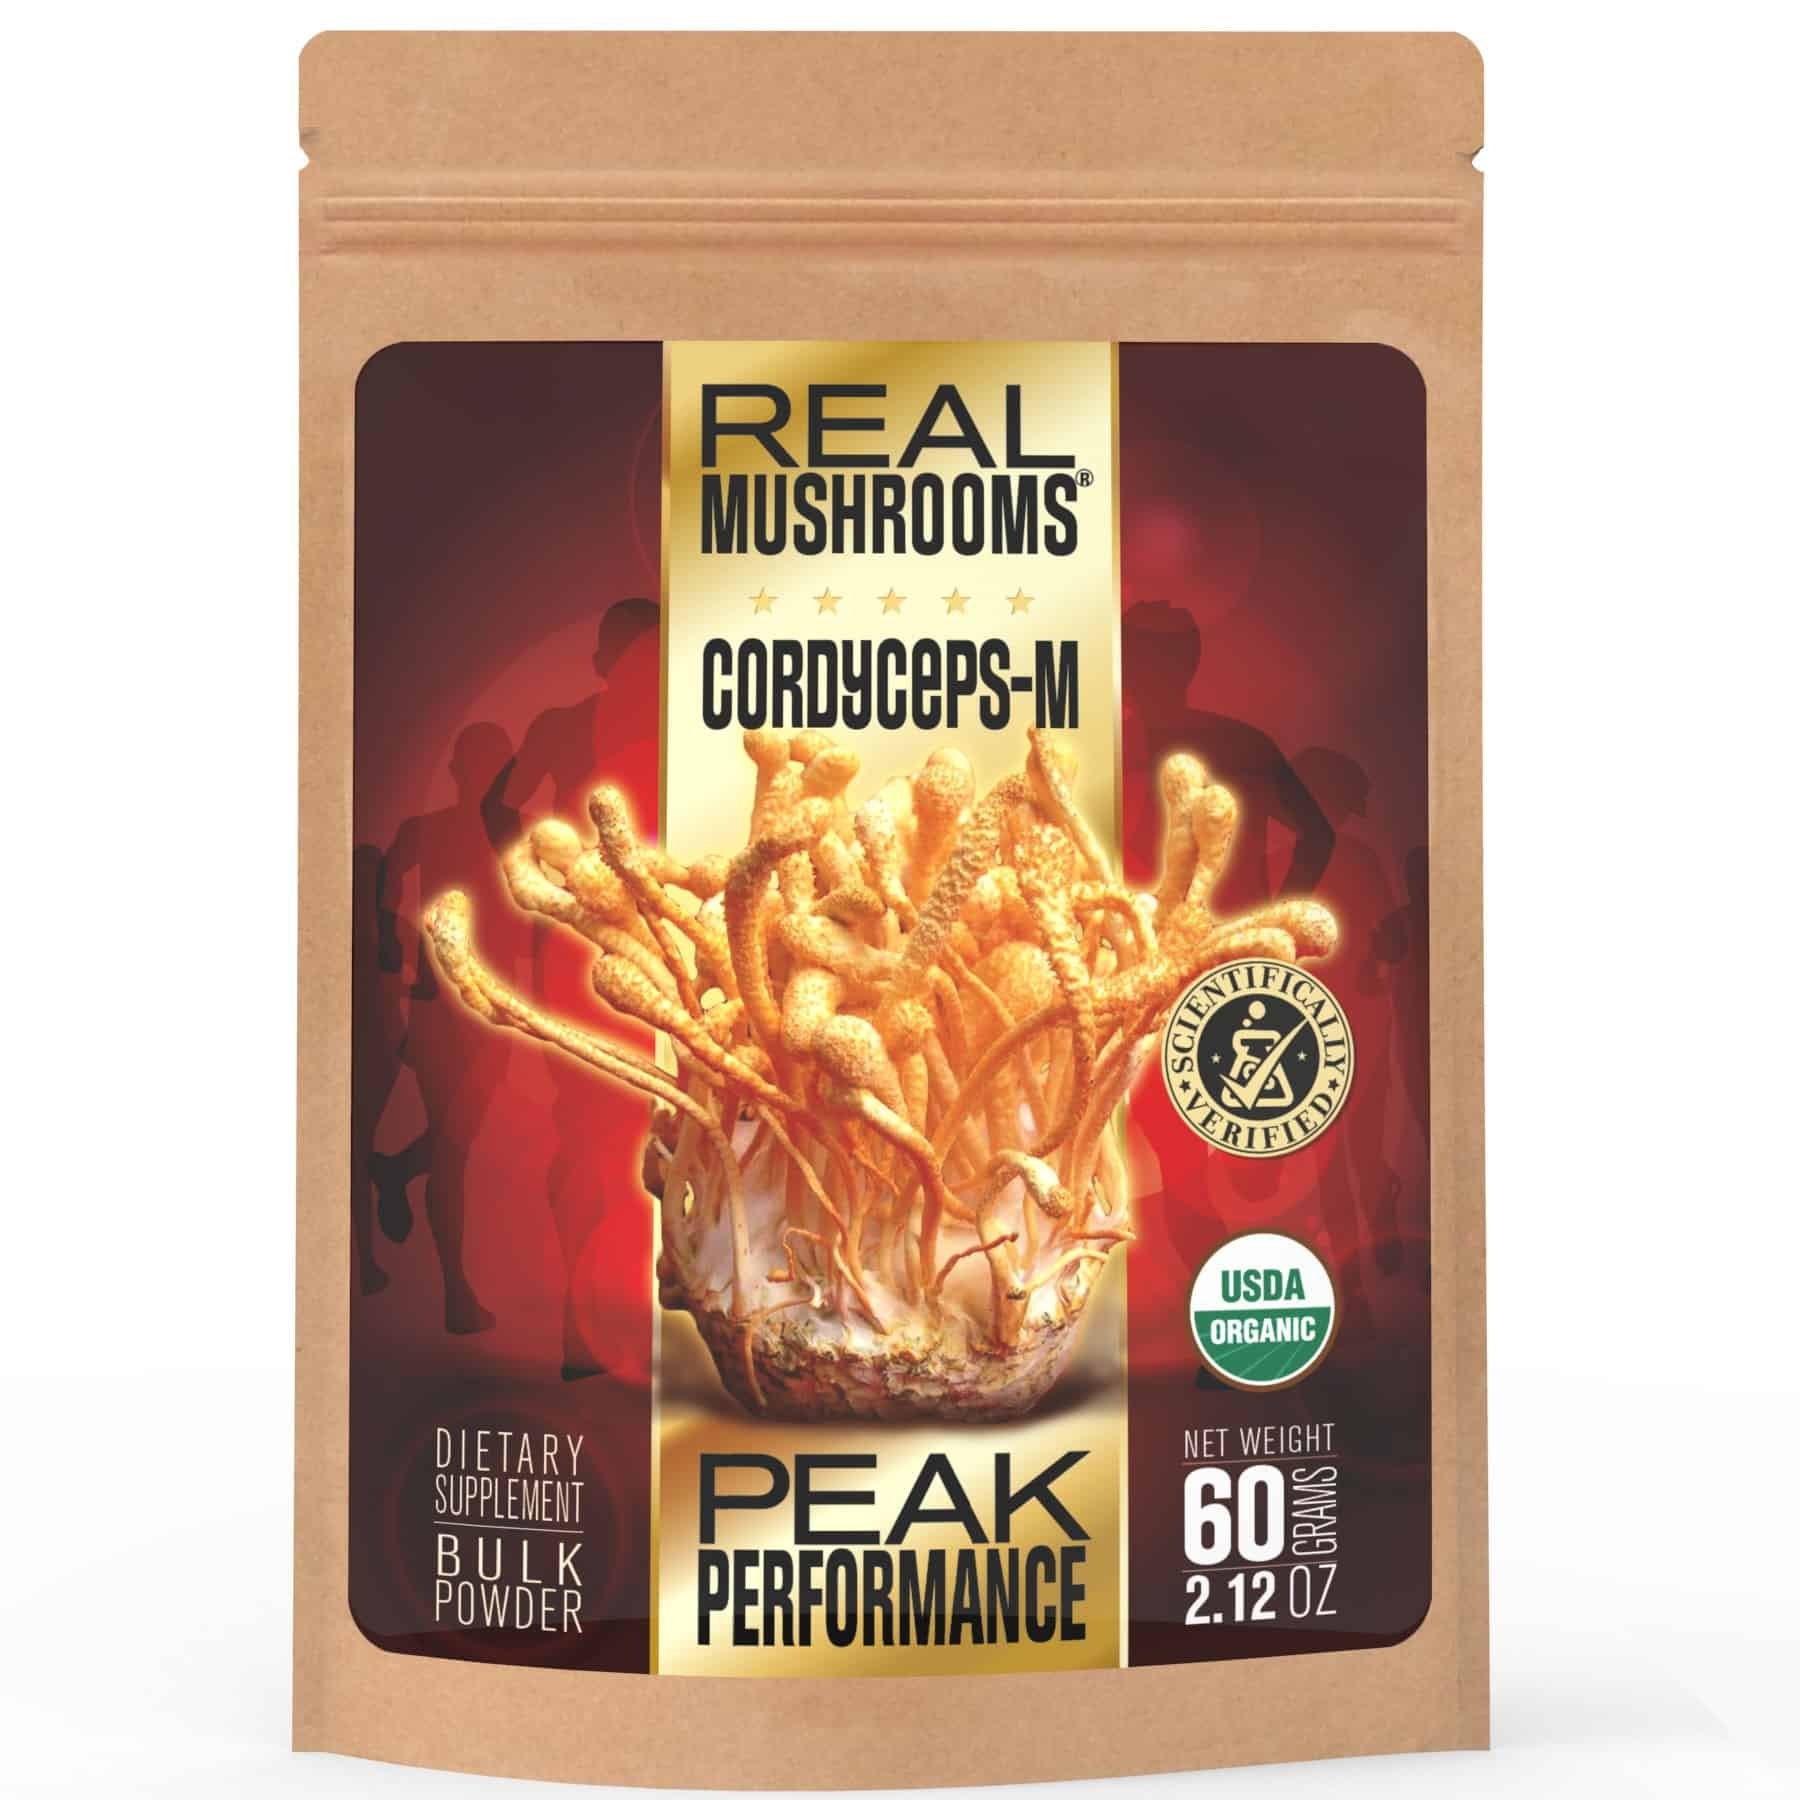 Cordyceps Mushroom Extract Powder by Real Mushrooms - Certified Organic - 60g Bulk Cordyceps Mushroom Powder - Perfomance - Recovery - All-Day Energy - Perfect for Shakes, Smoothies, Coffee and Tea